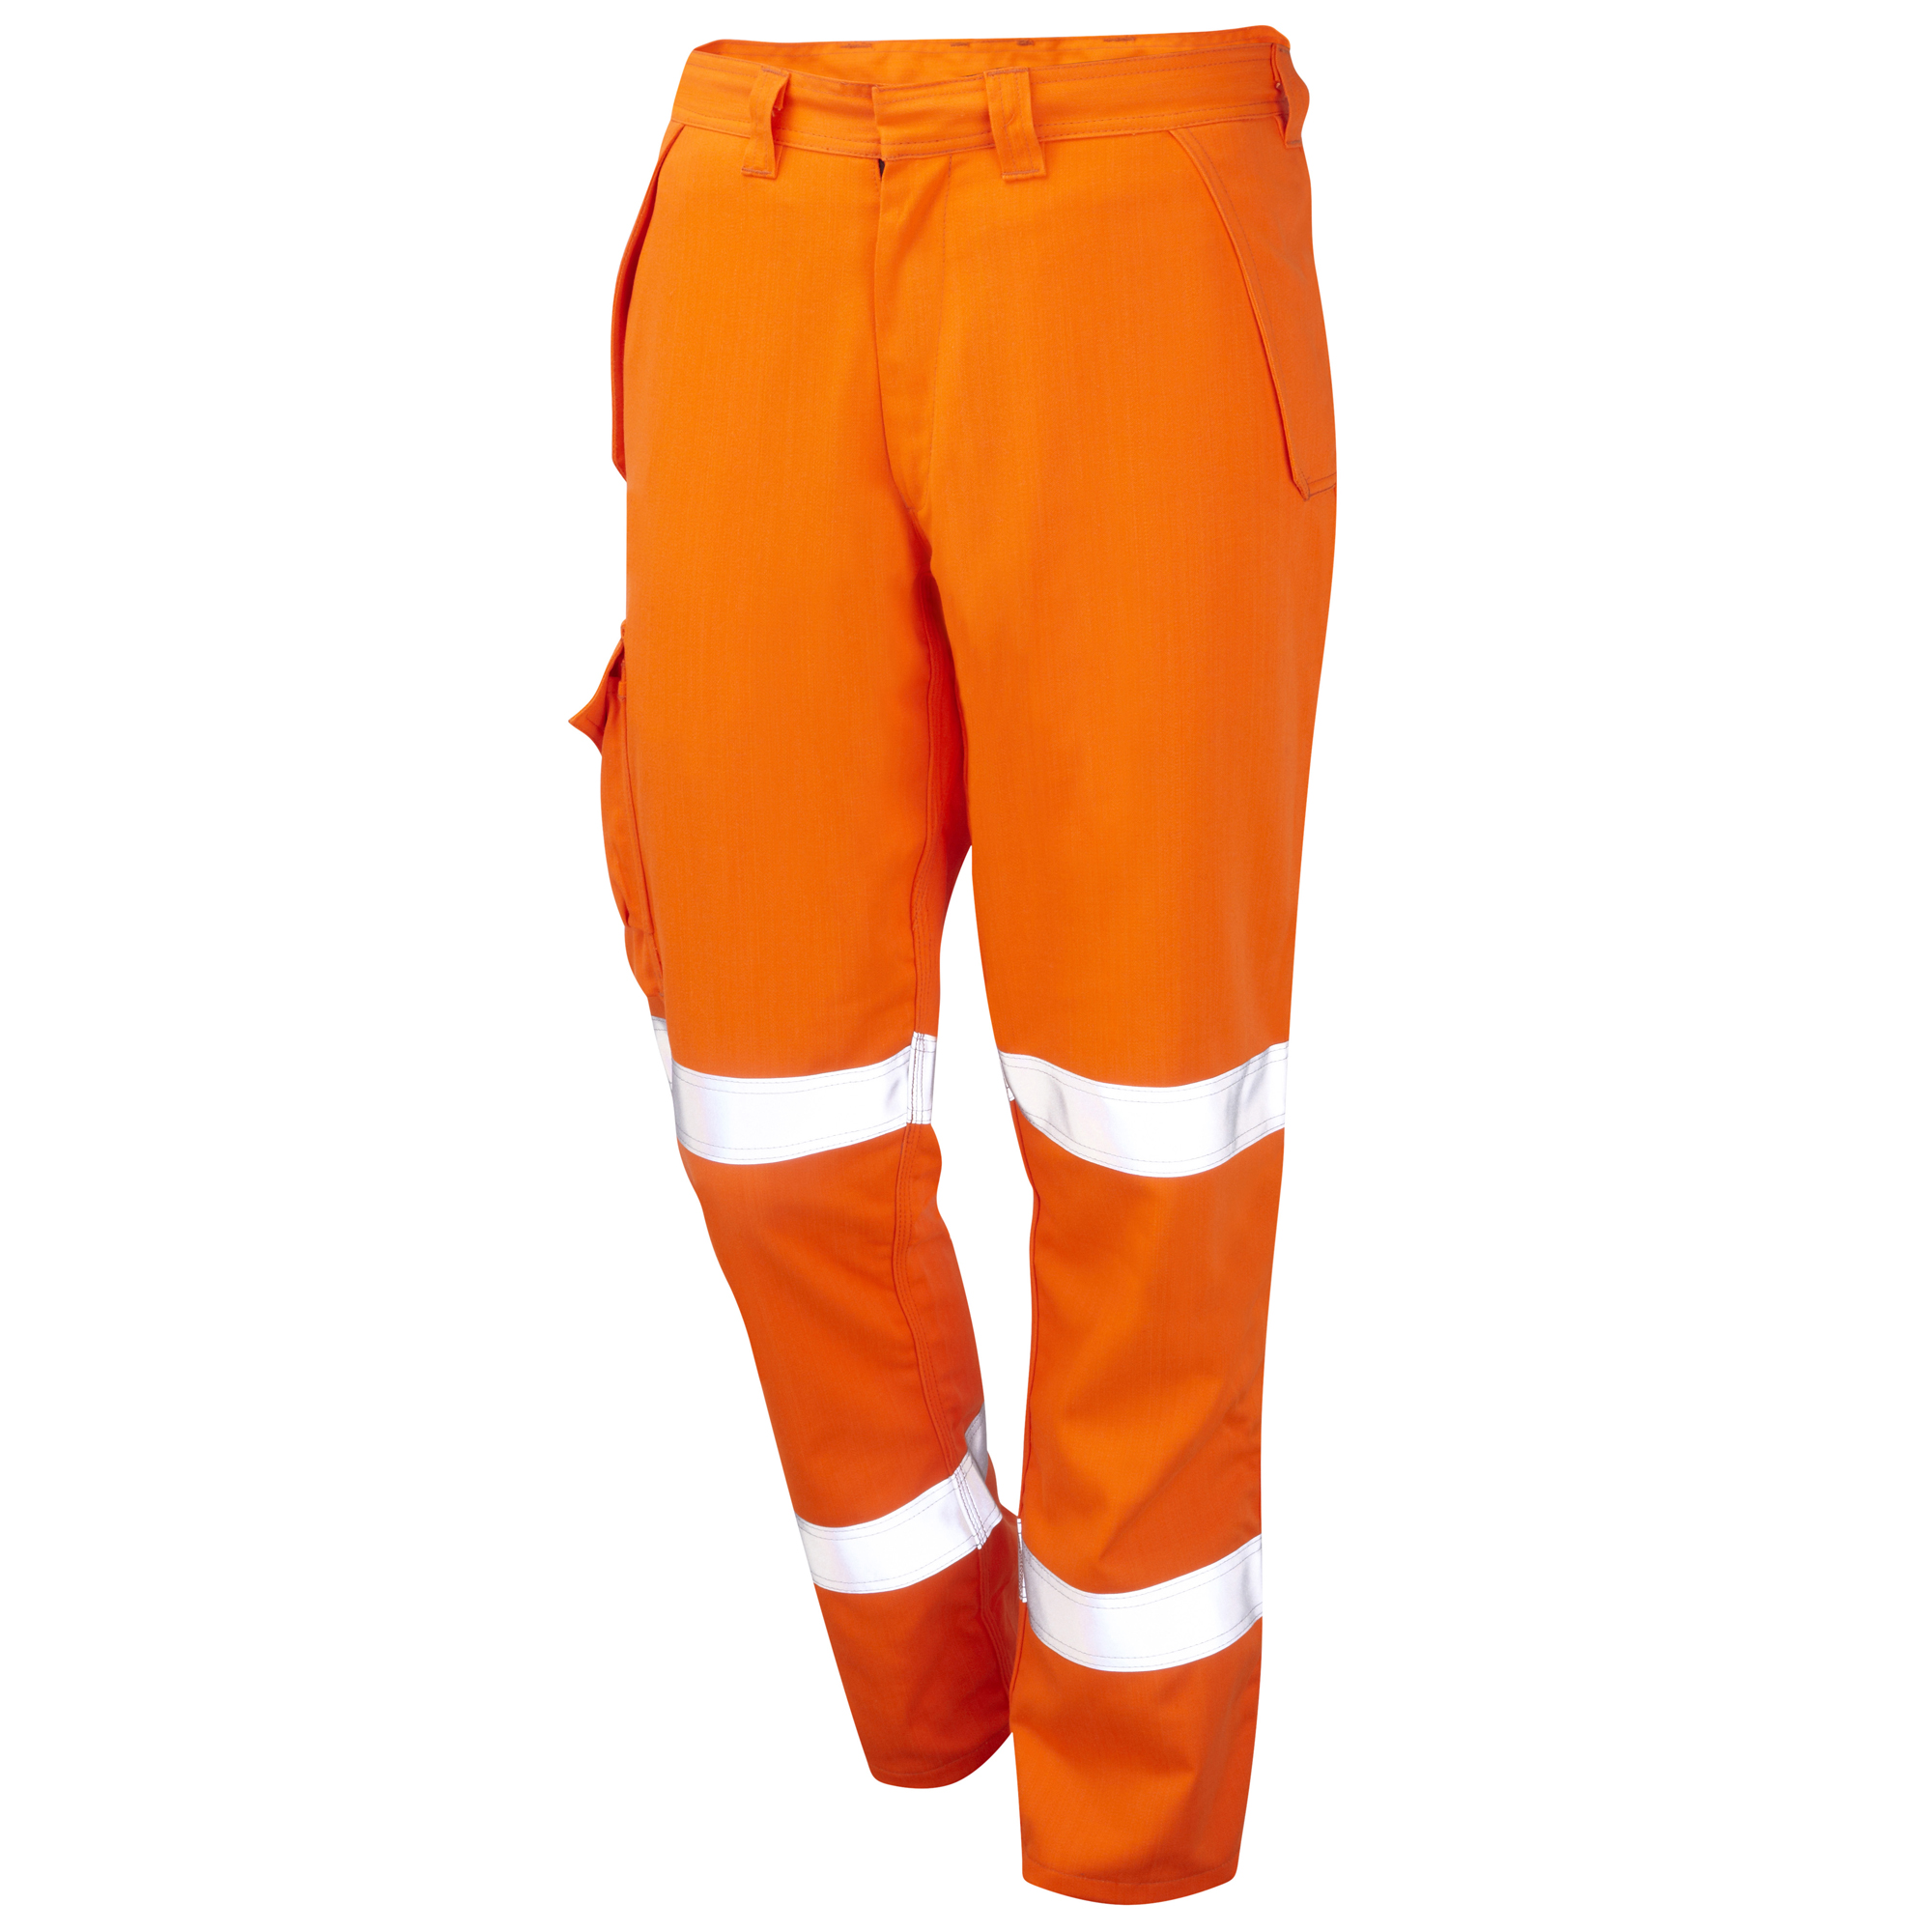 PROGARM 4616 ARC TROUSER, HV ORANGE - CLASS 1